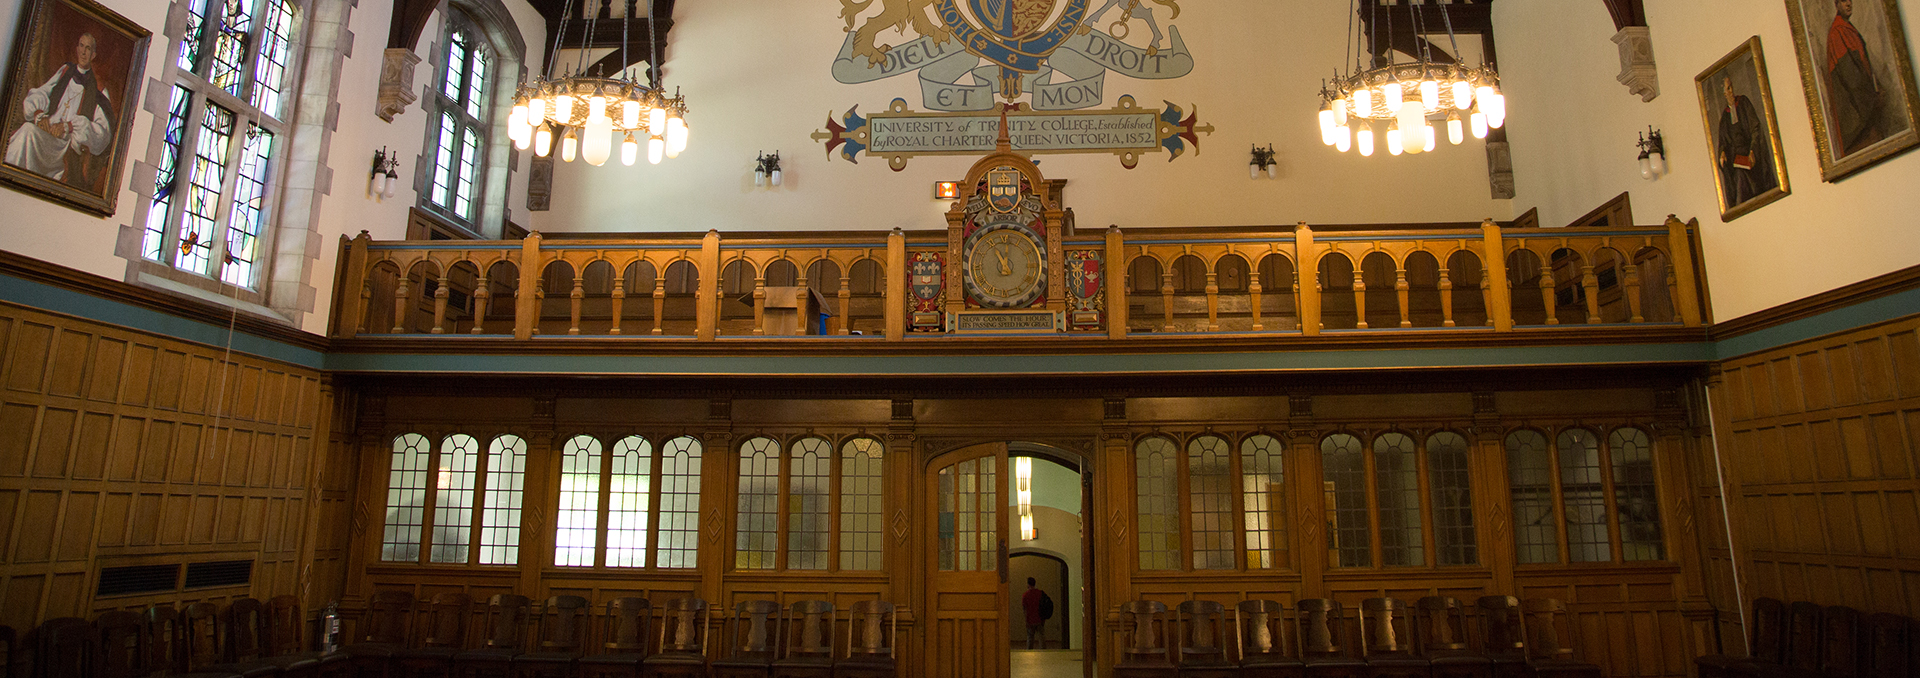 View of the balcony and clock in Strachan Hall